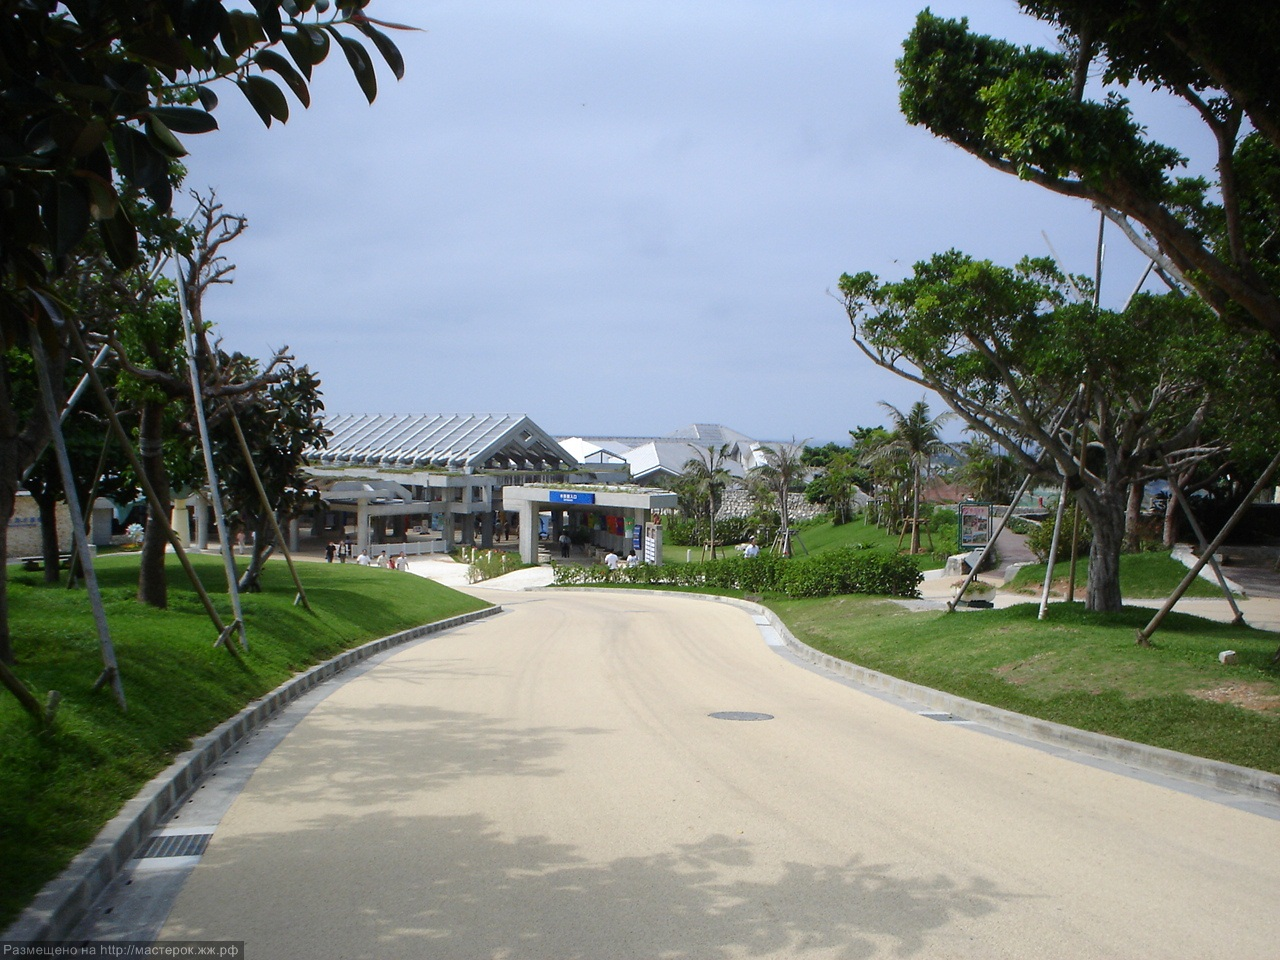 Аквариум Okinawa Churaumi